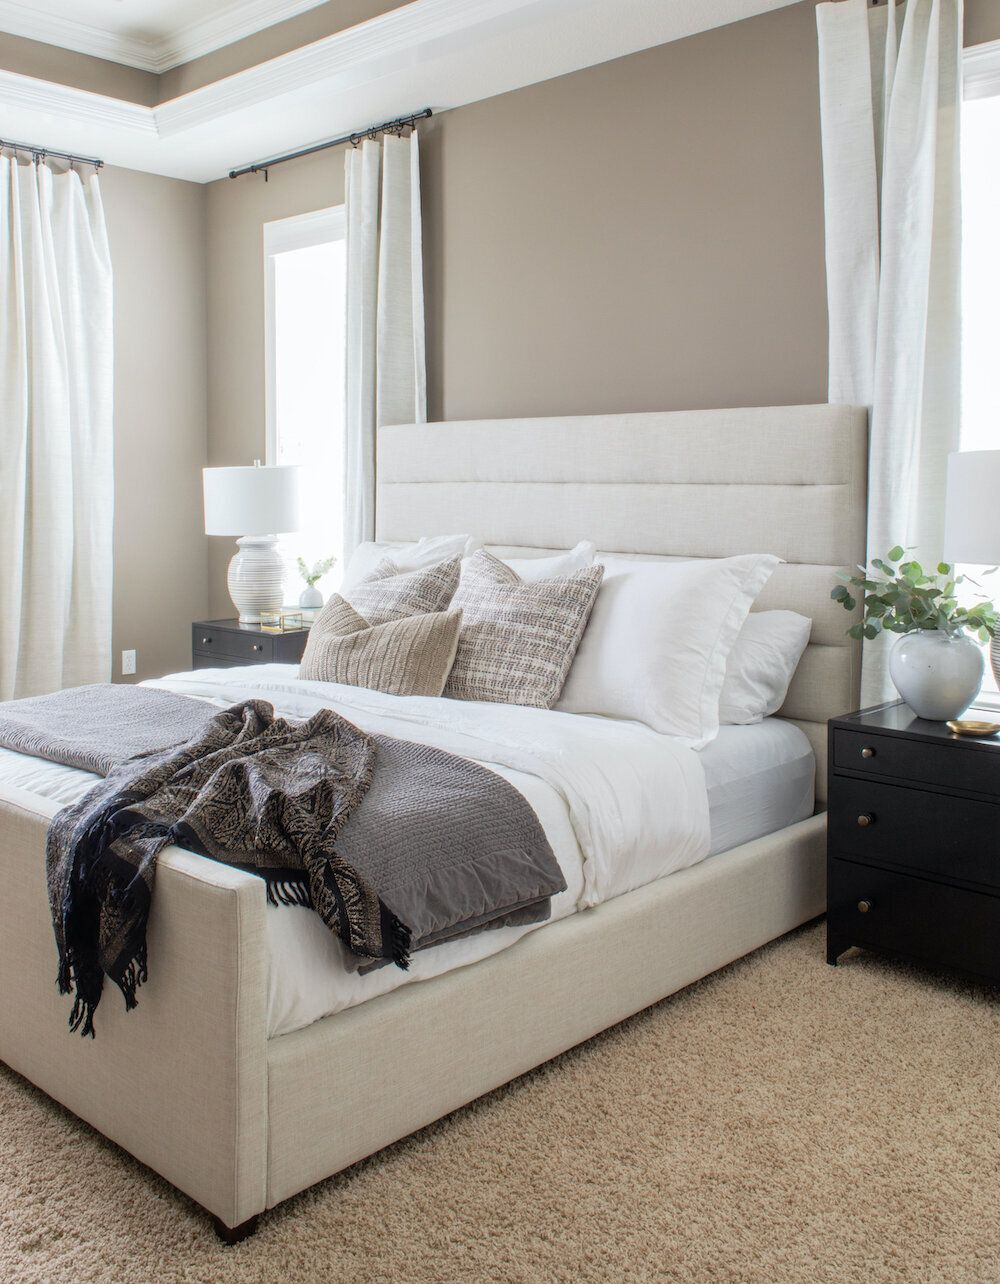 Bedroom Update 101 7 Simple Steps To Elevate Your Master Scout Nimble Apartment Bedroom Design Bedroom Updates Farmhouse Style Bedroom Decor Beige bedroom decorating ideas